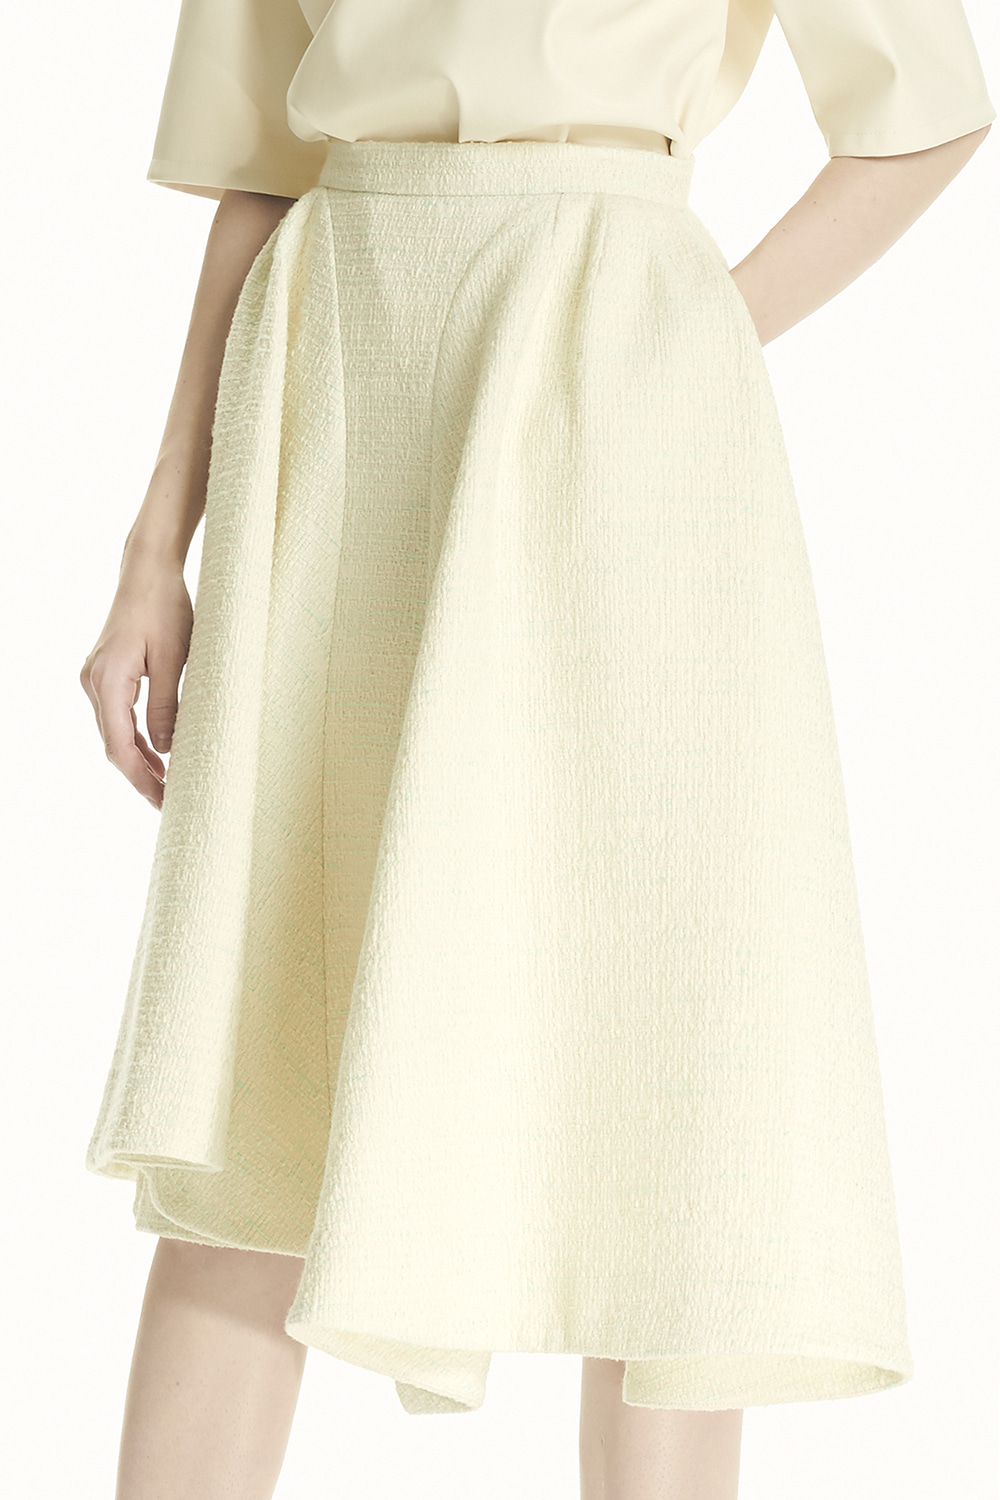 PS21 UNBALANCED PUFF MINT SKIRT